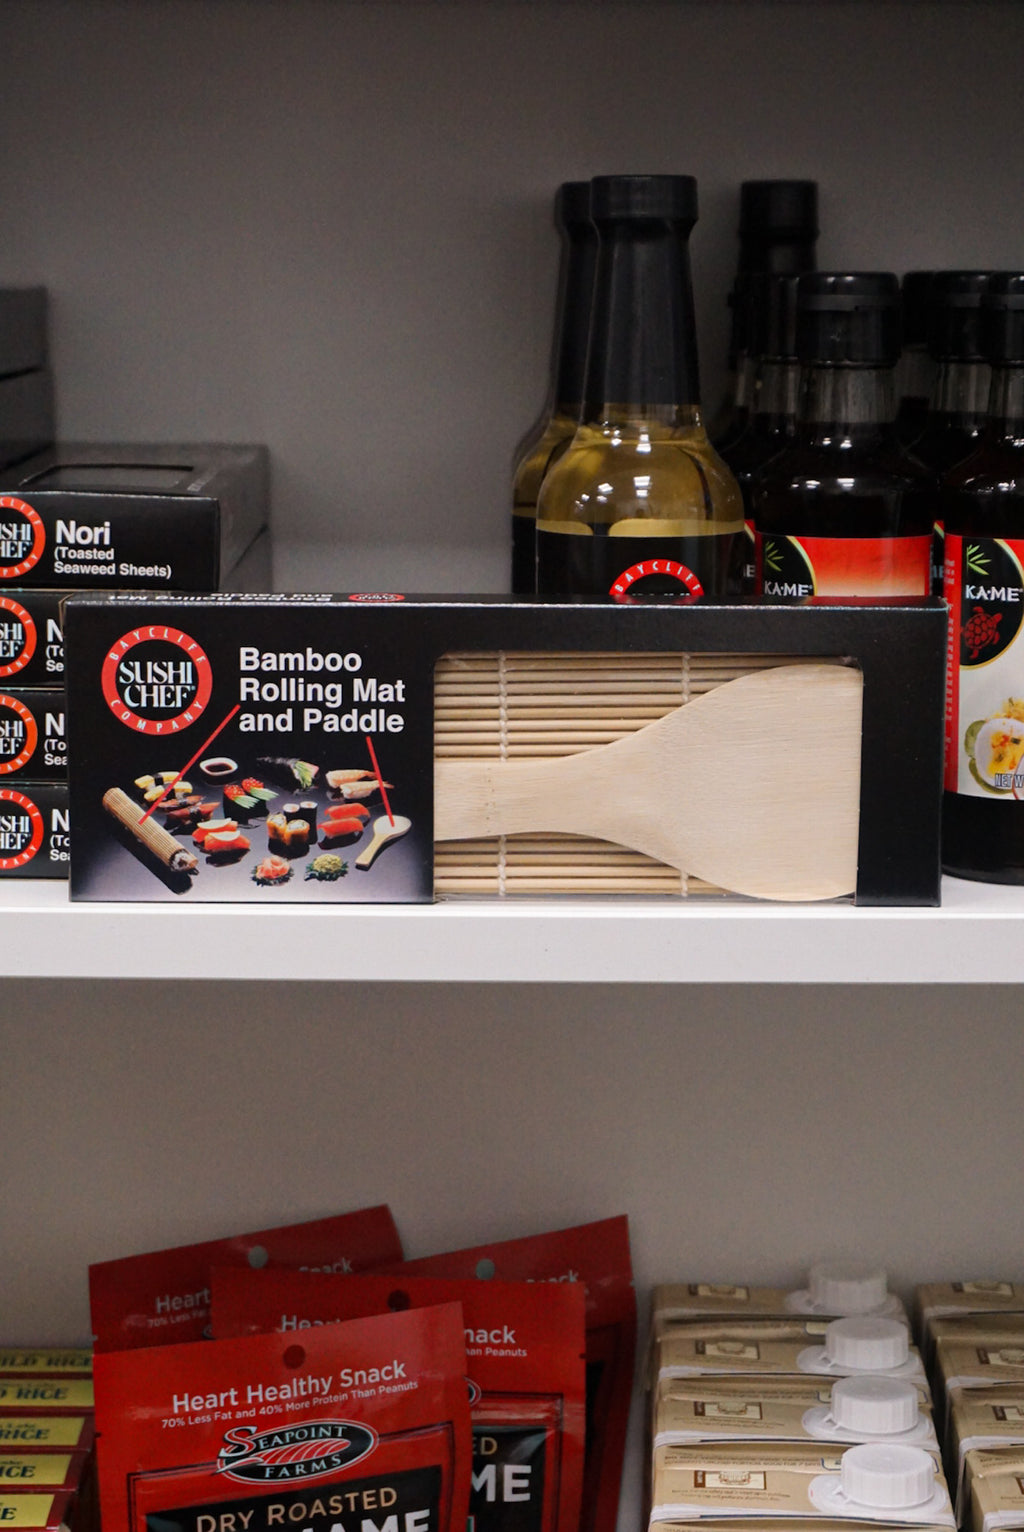 Sushi Chef Bamboo Rolling Mat & Paddle - Westport